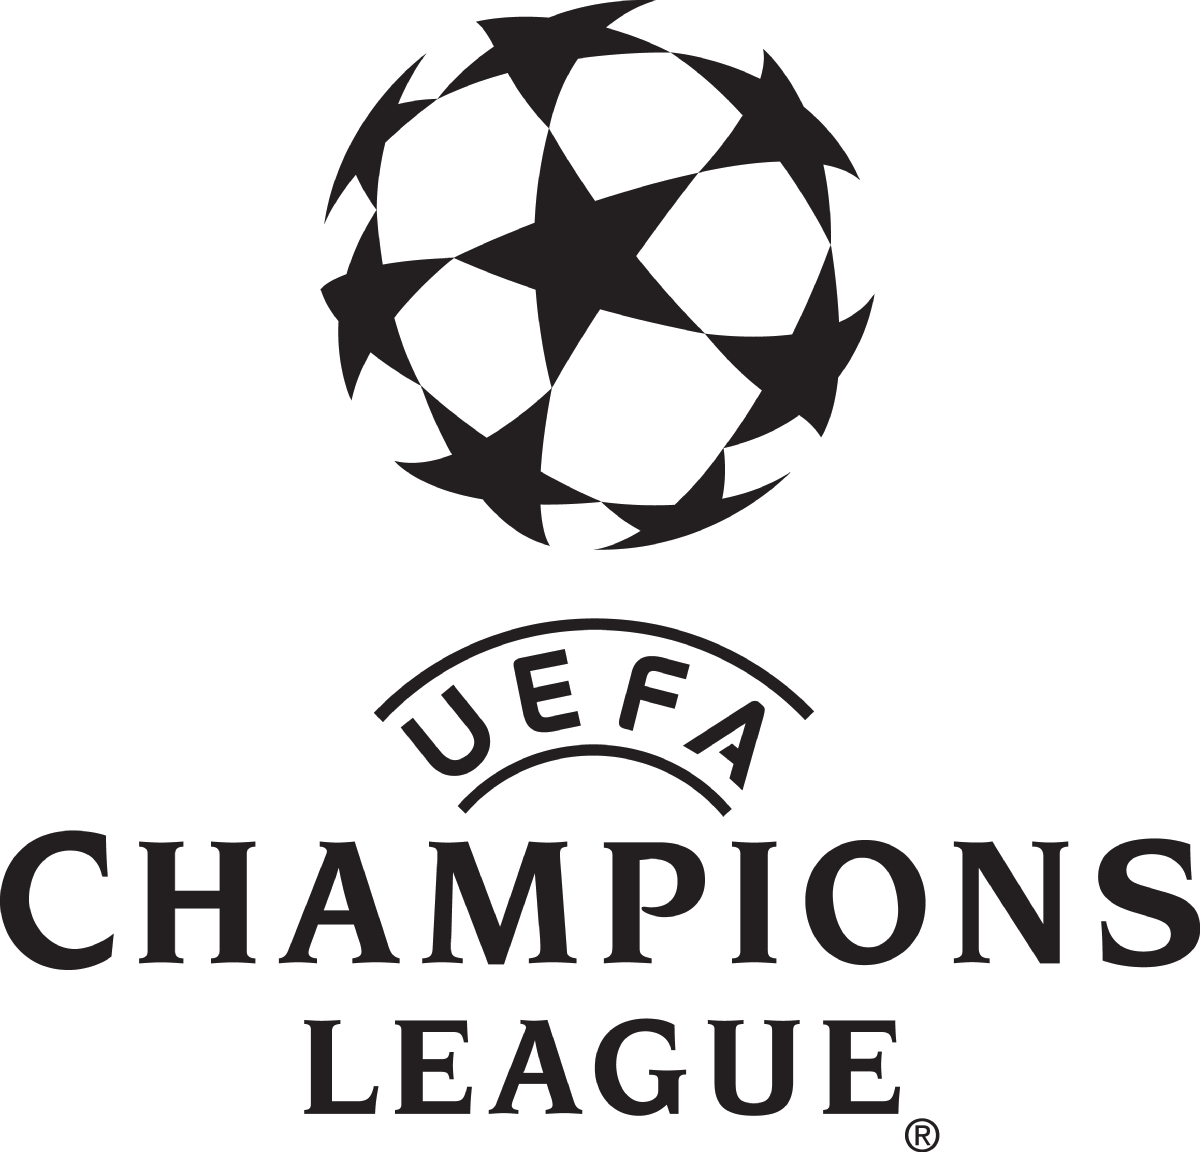 uefa champions league wikipedia uefa champions league wikipedia